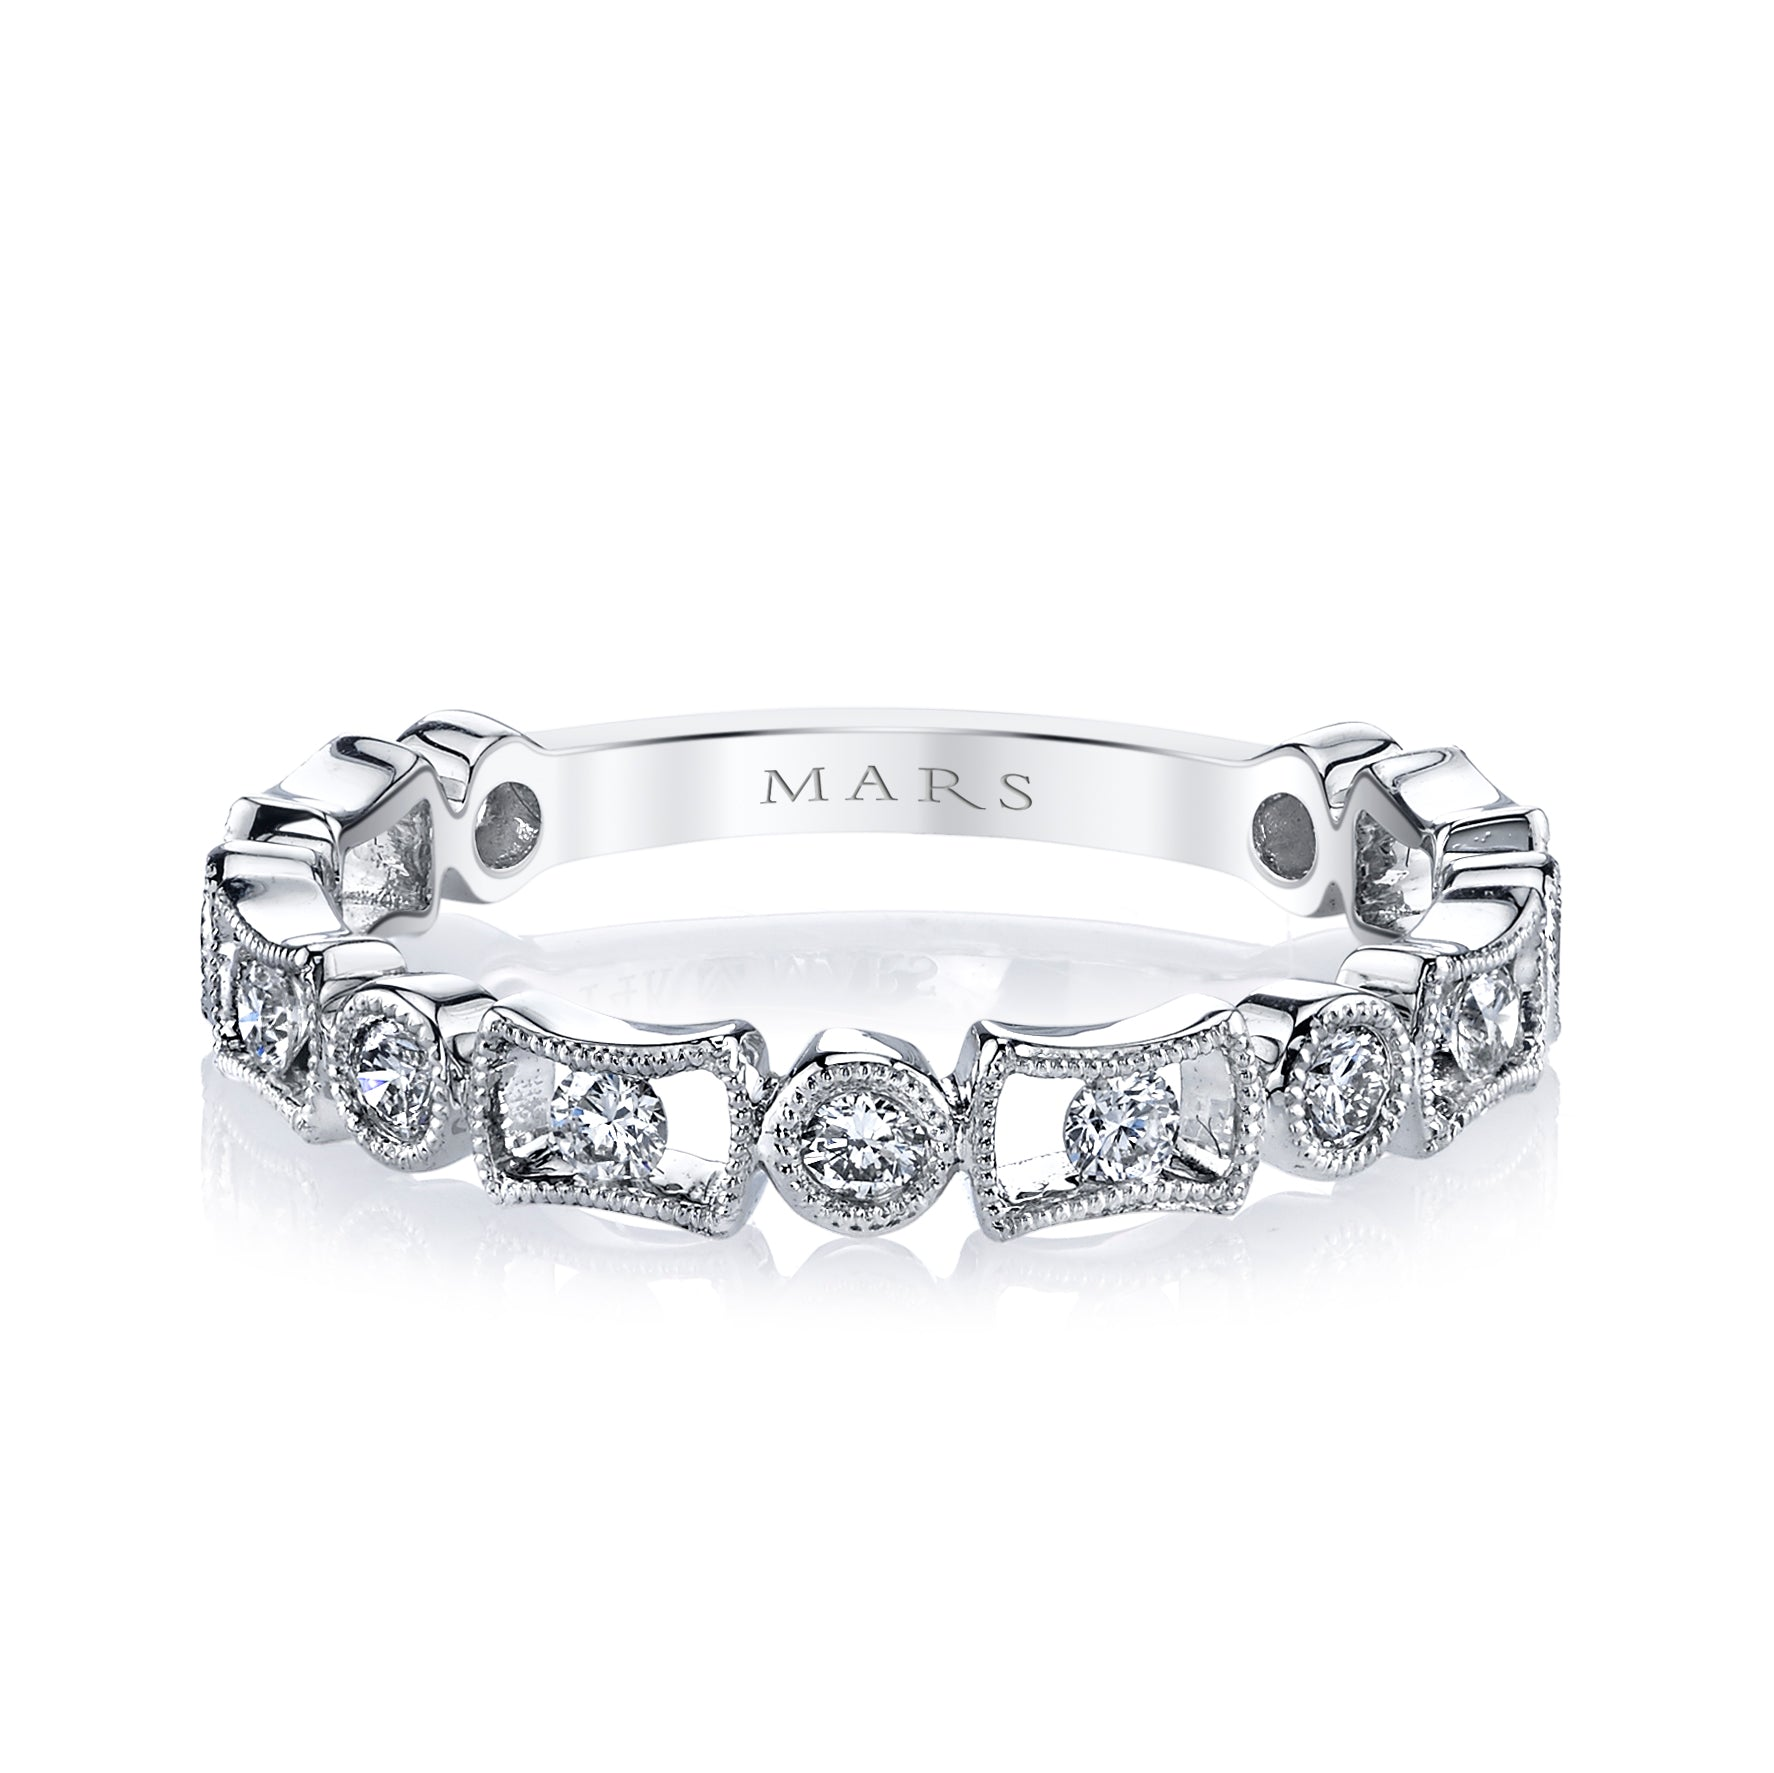 Mars Jewelry 14K White Gold Stackable Band w/ Bezel Set Diamonds 26211